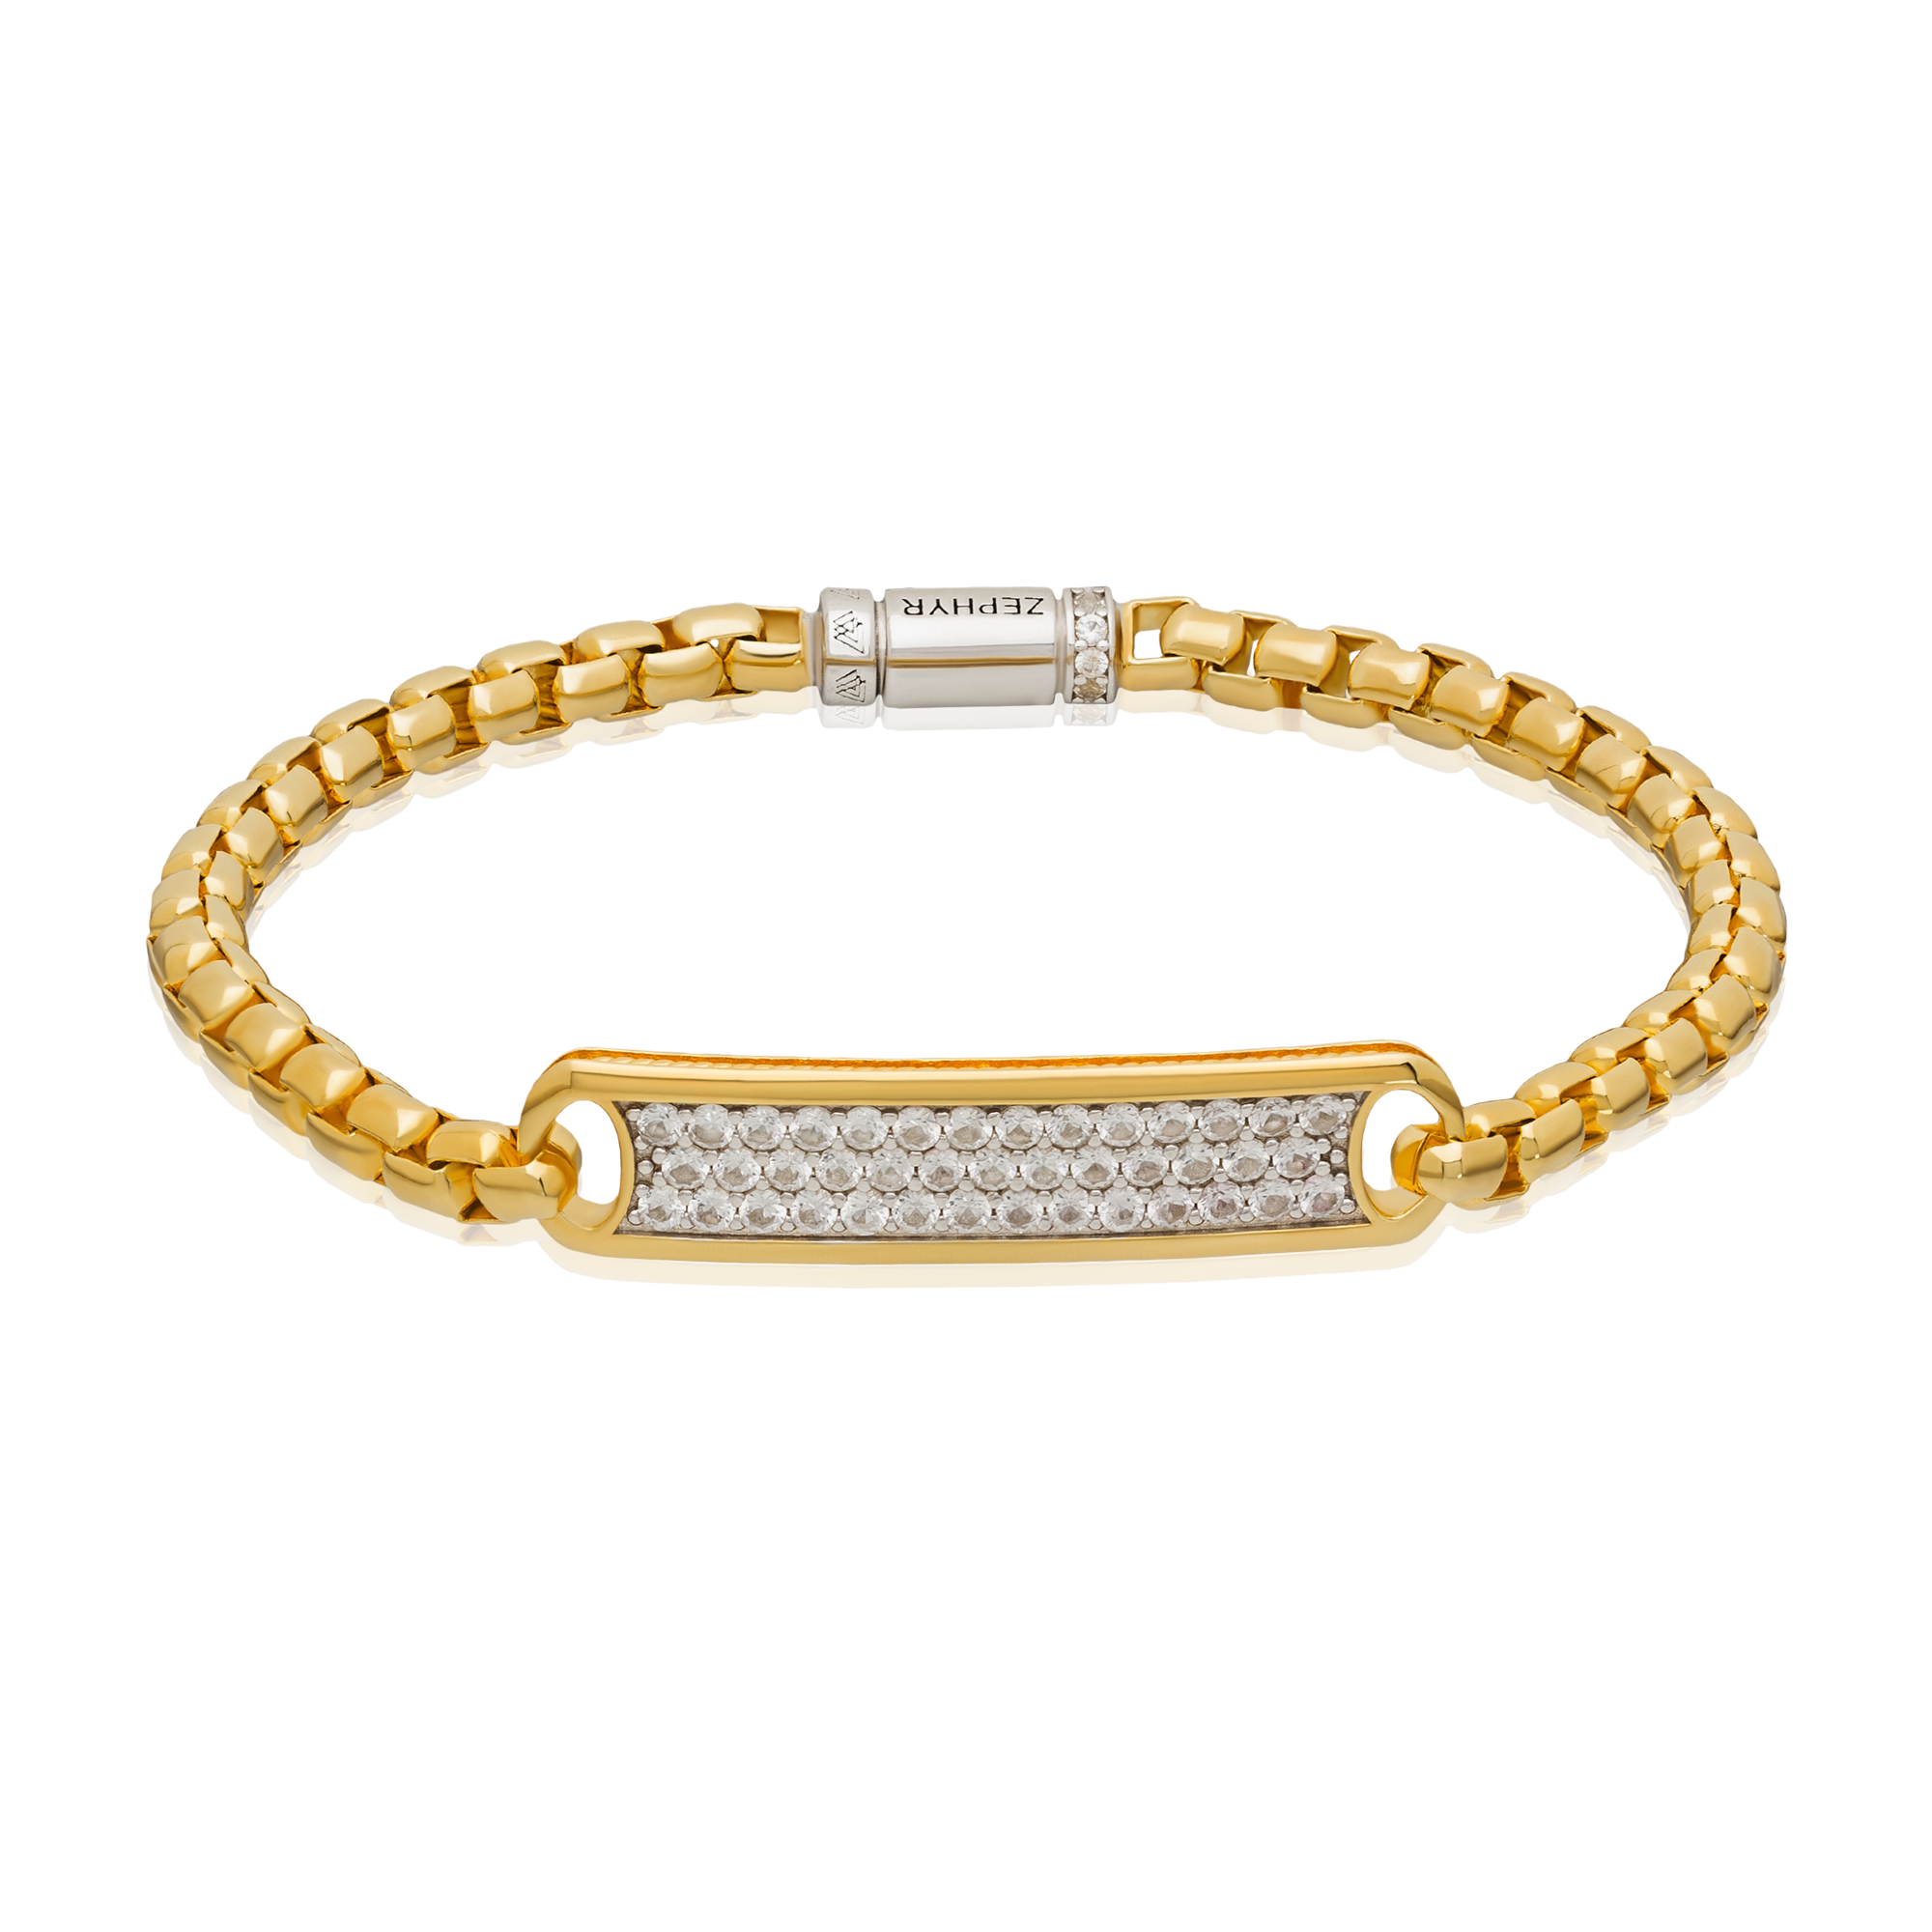 Golden bracelet product photography